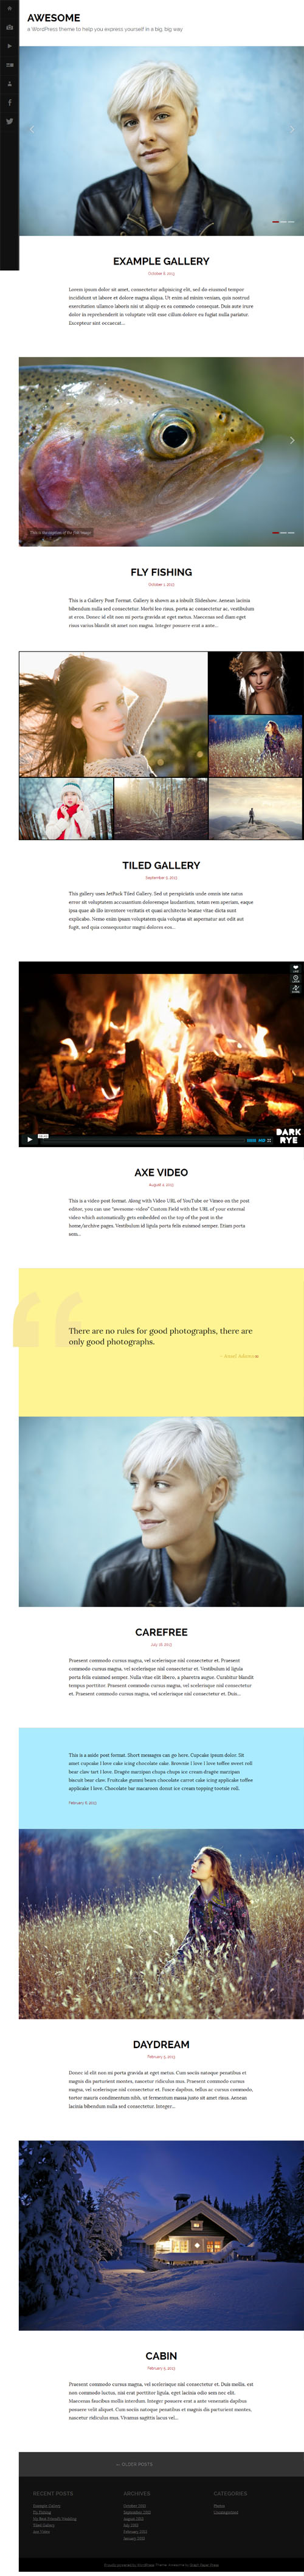 40 Best Premium Blog WordPress Themes 2018